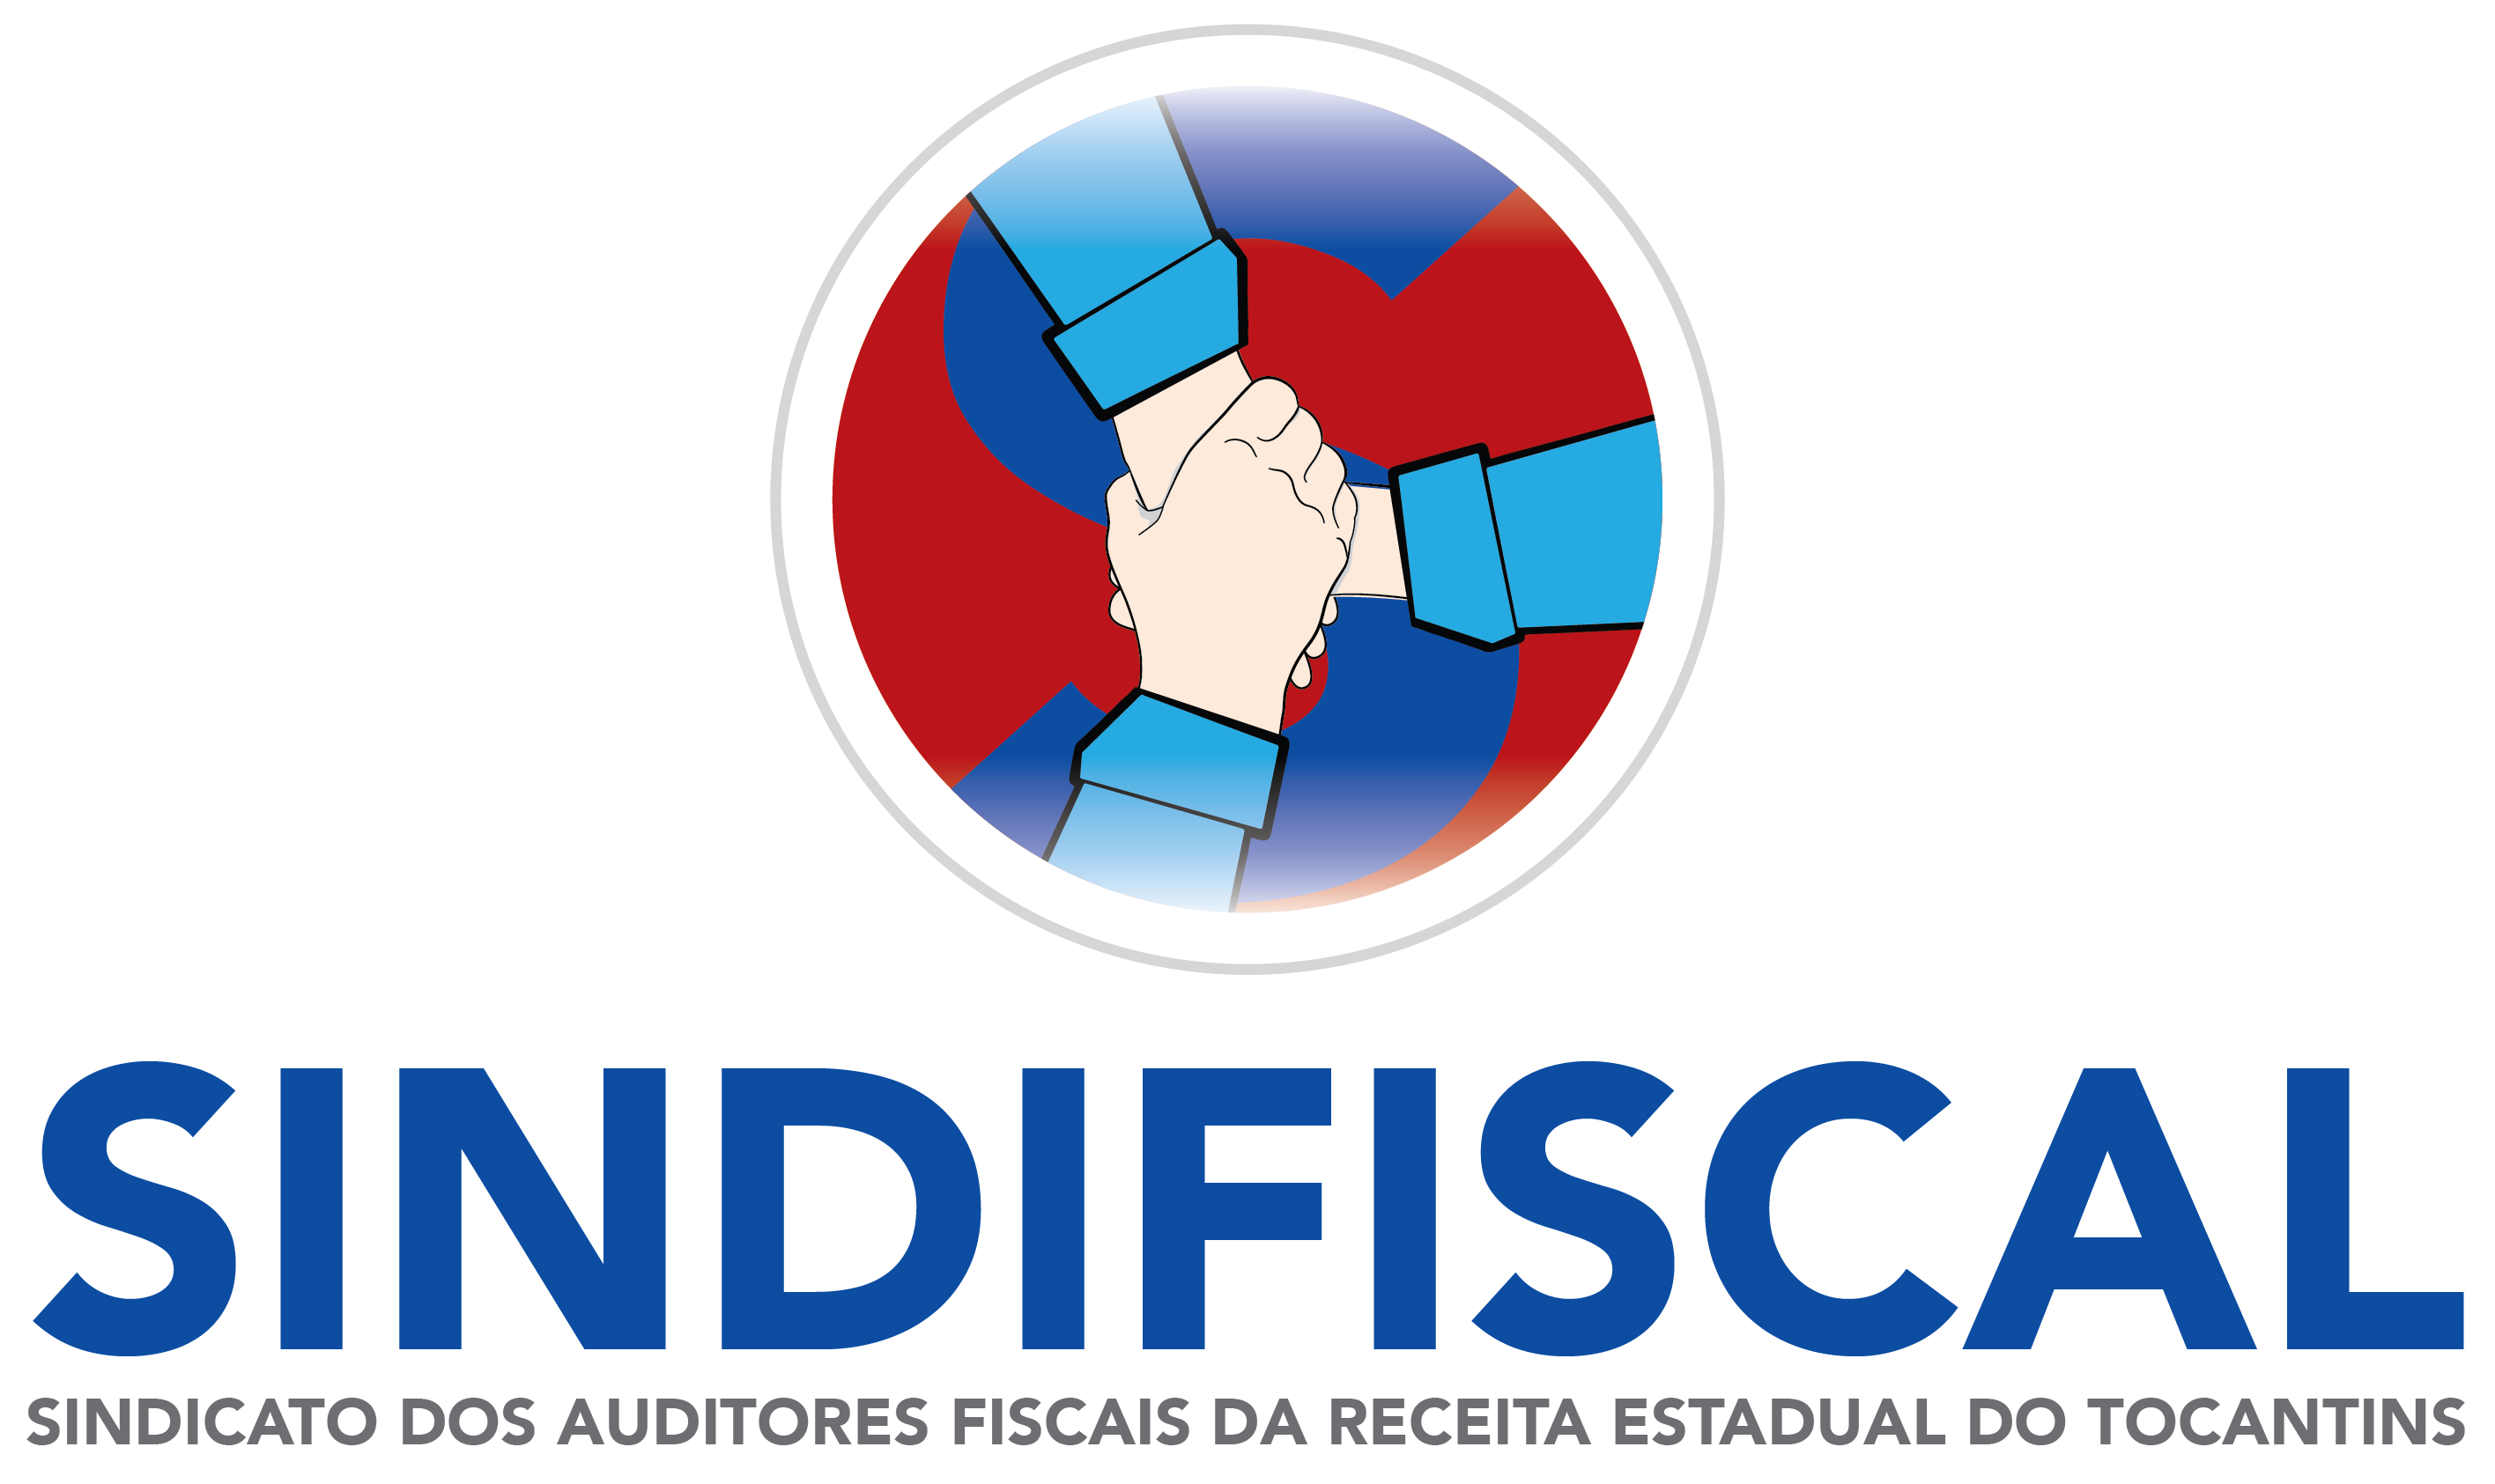 SINDIFISCAL